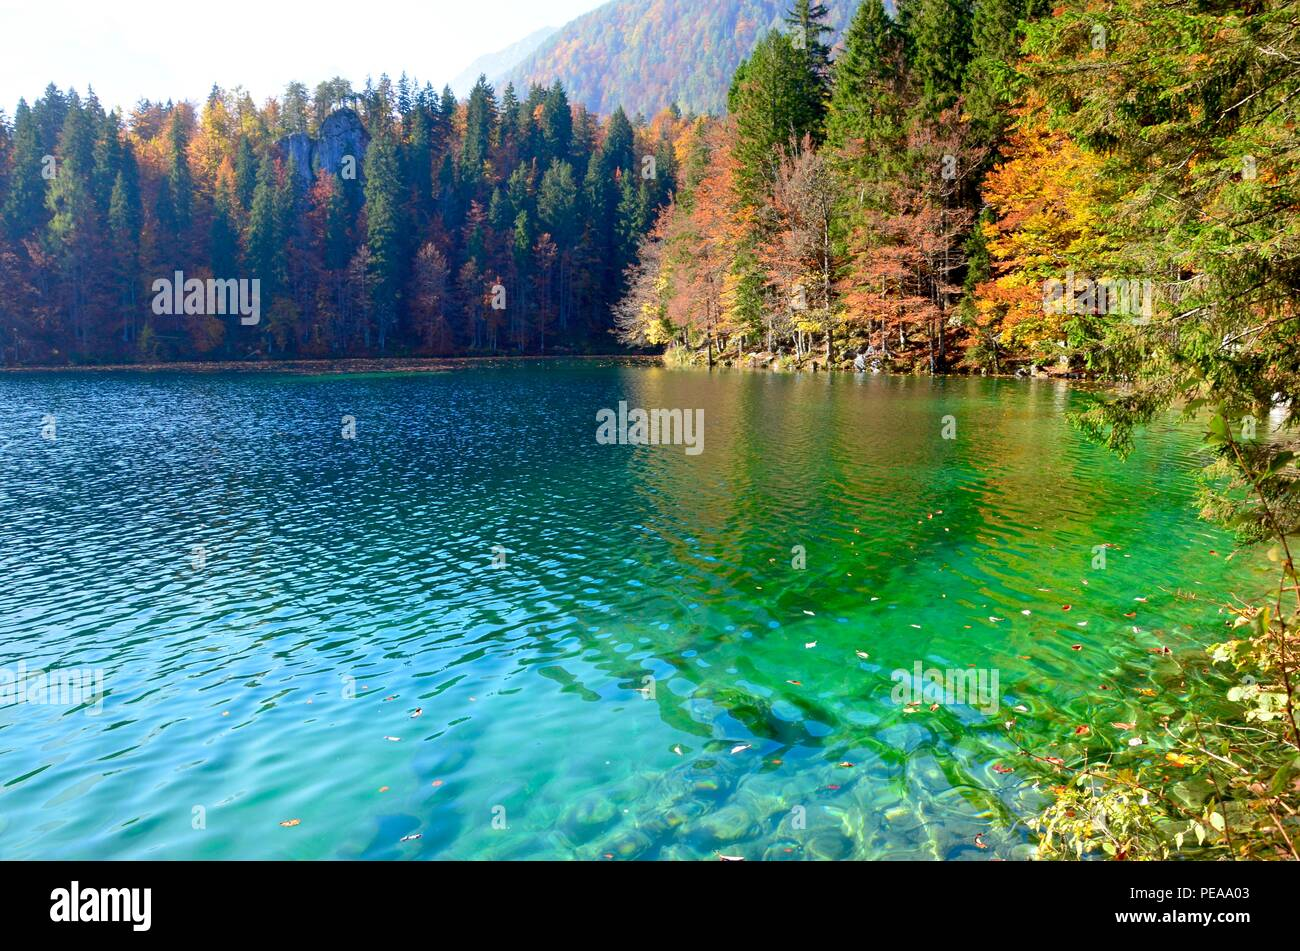 Autumn landscape at Lakes Laghi di Fusine in Italy, Slovenian Border, Europe, fall foliage, colorful trees, Travisio, explorers holiday, mountains - Stock Image